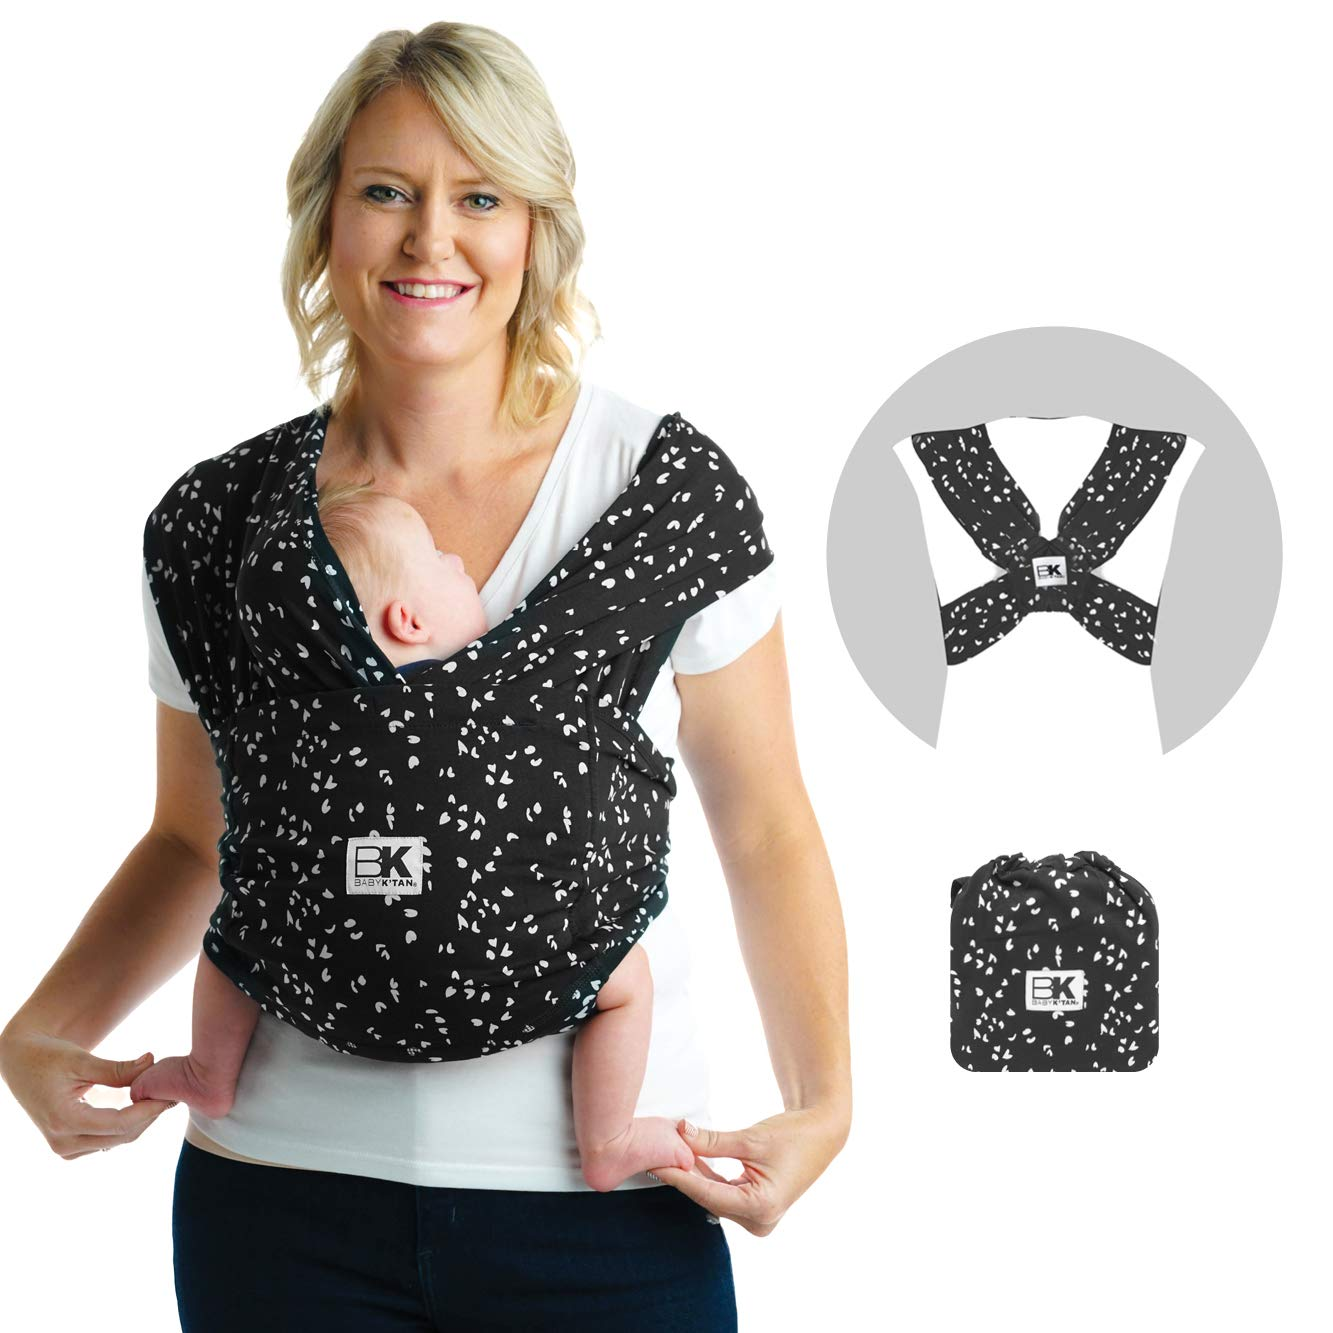 Baby K'tan Print Baby Wrap Carrier, Infant and Child Sling - Simple Pre-Wrapped Holder for Babywearing - No Tying or Rings - Carry Newborn up to 35 lbs, Sweetheart, S (W Dress 6-8 / M Jacket 37-38)